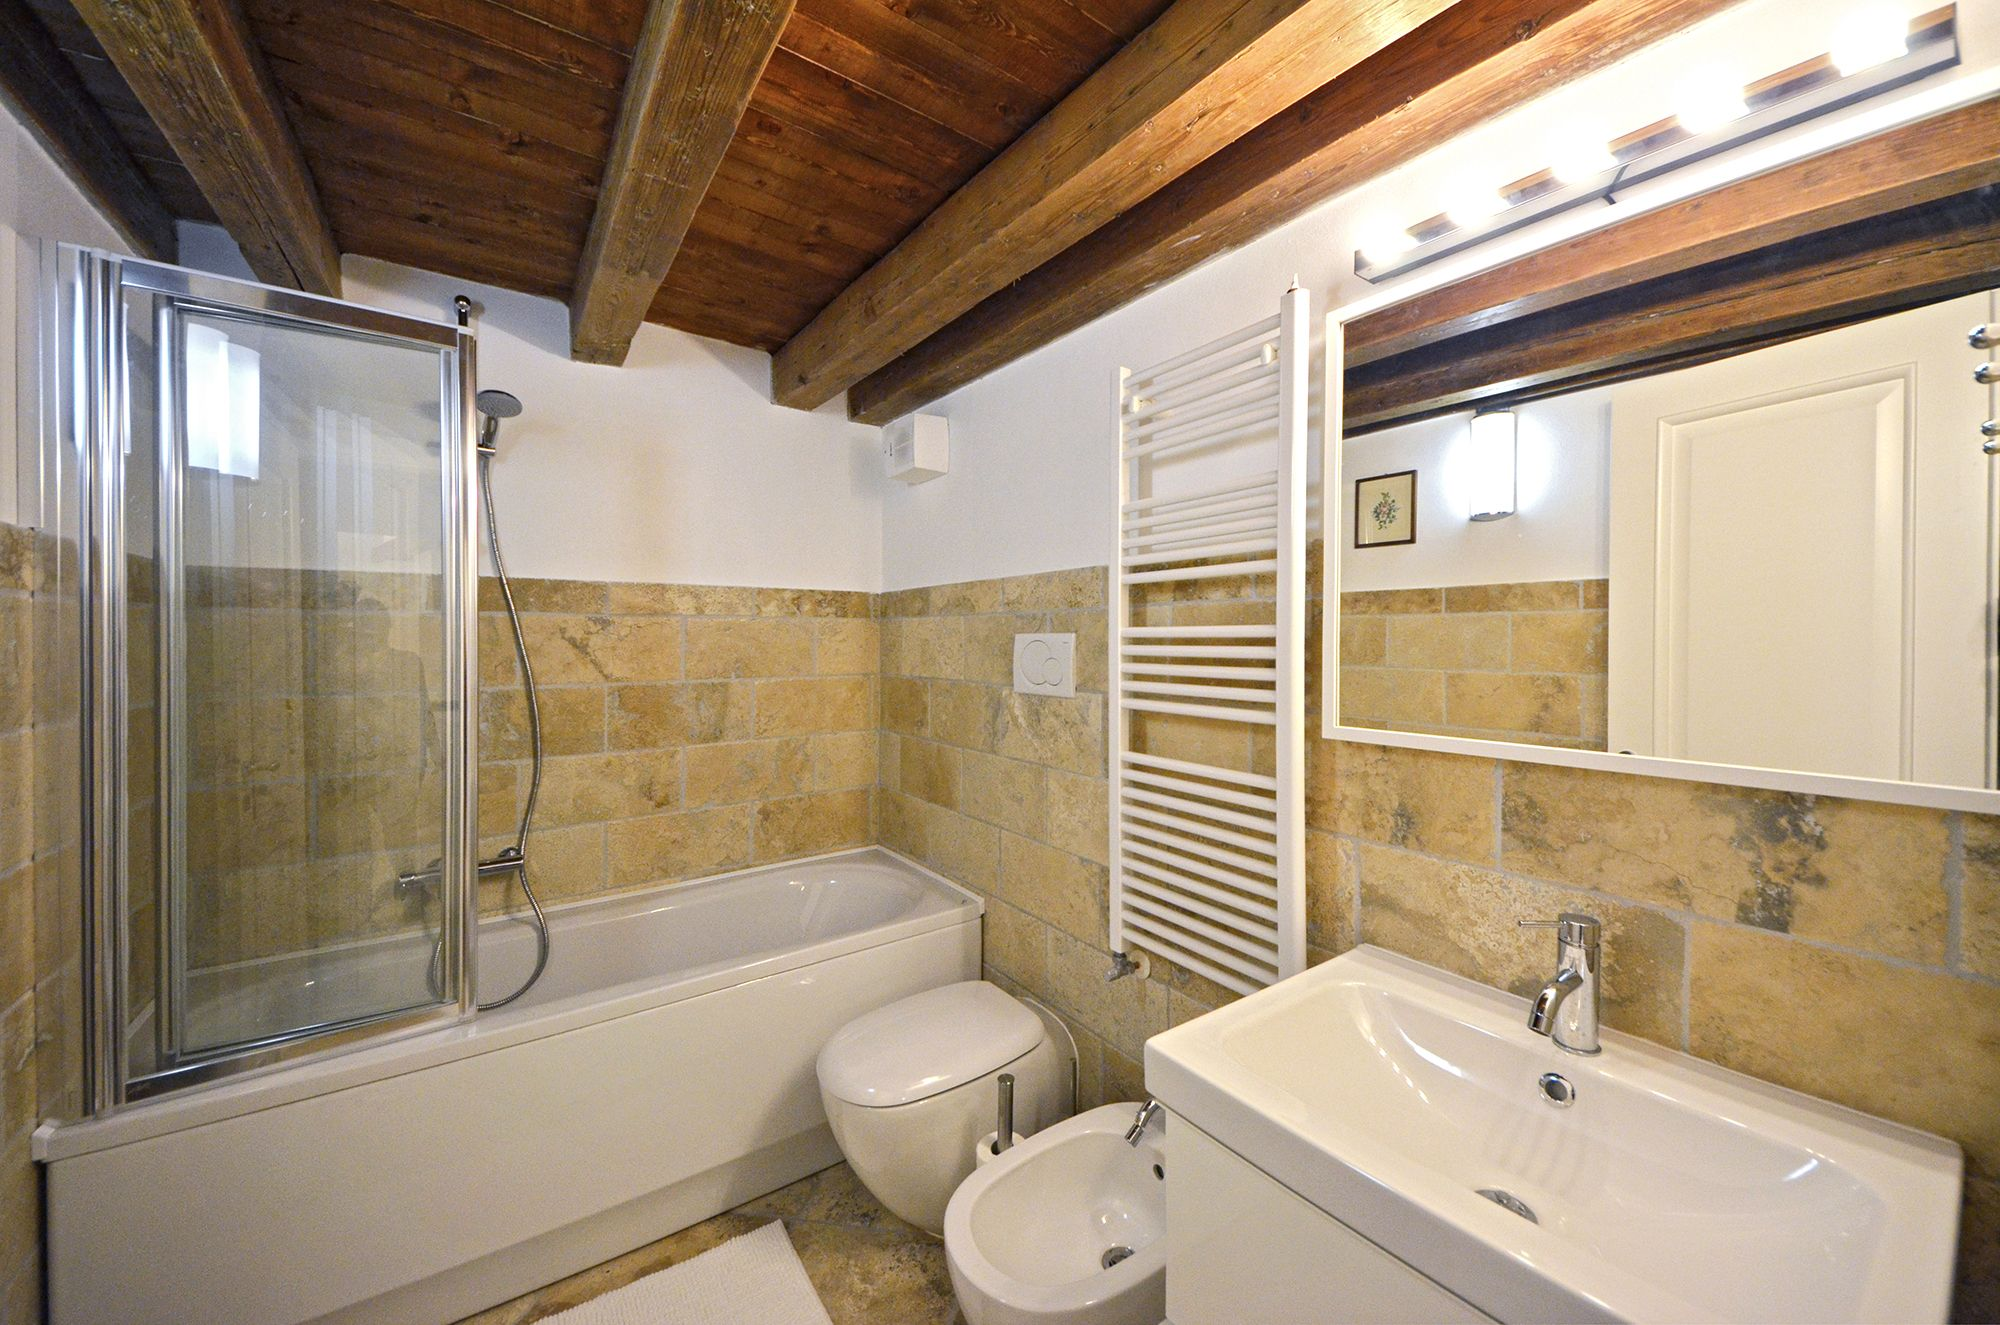 nice bathroom with bathtub and shower screen